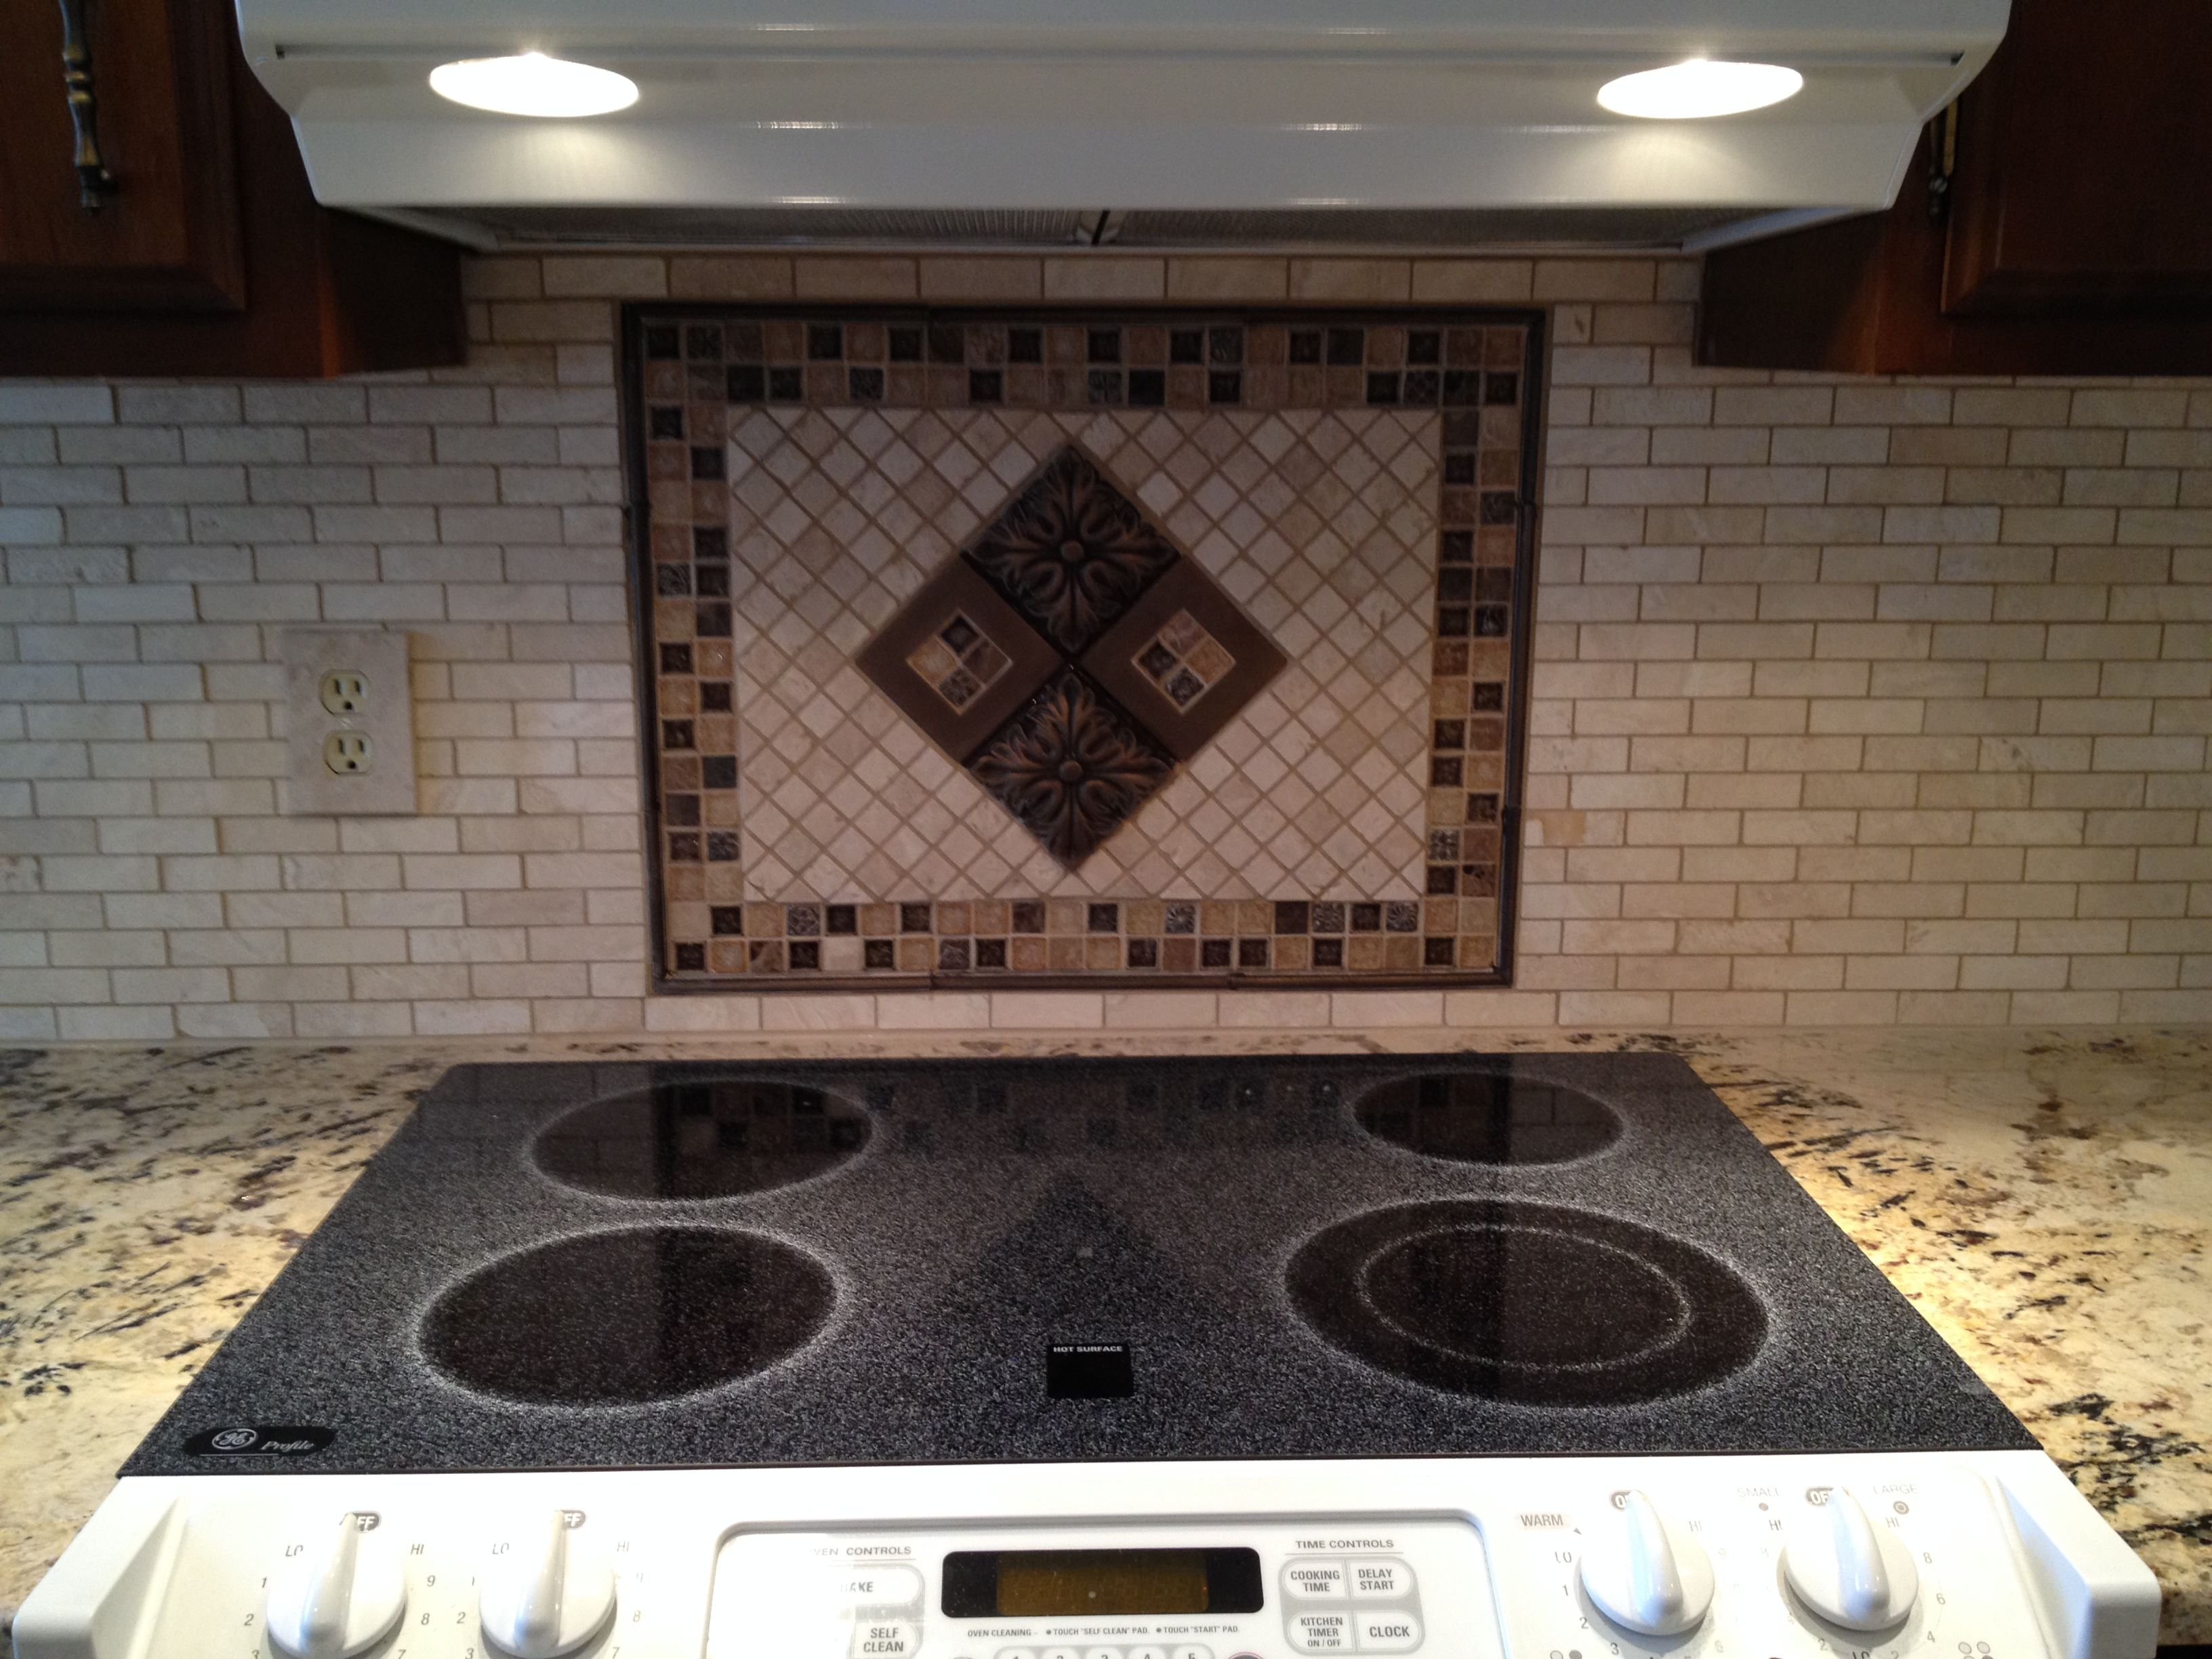 - Decorative Accent Above Stove, On Kitchen Backsplash, Grouted With